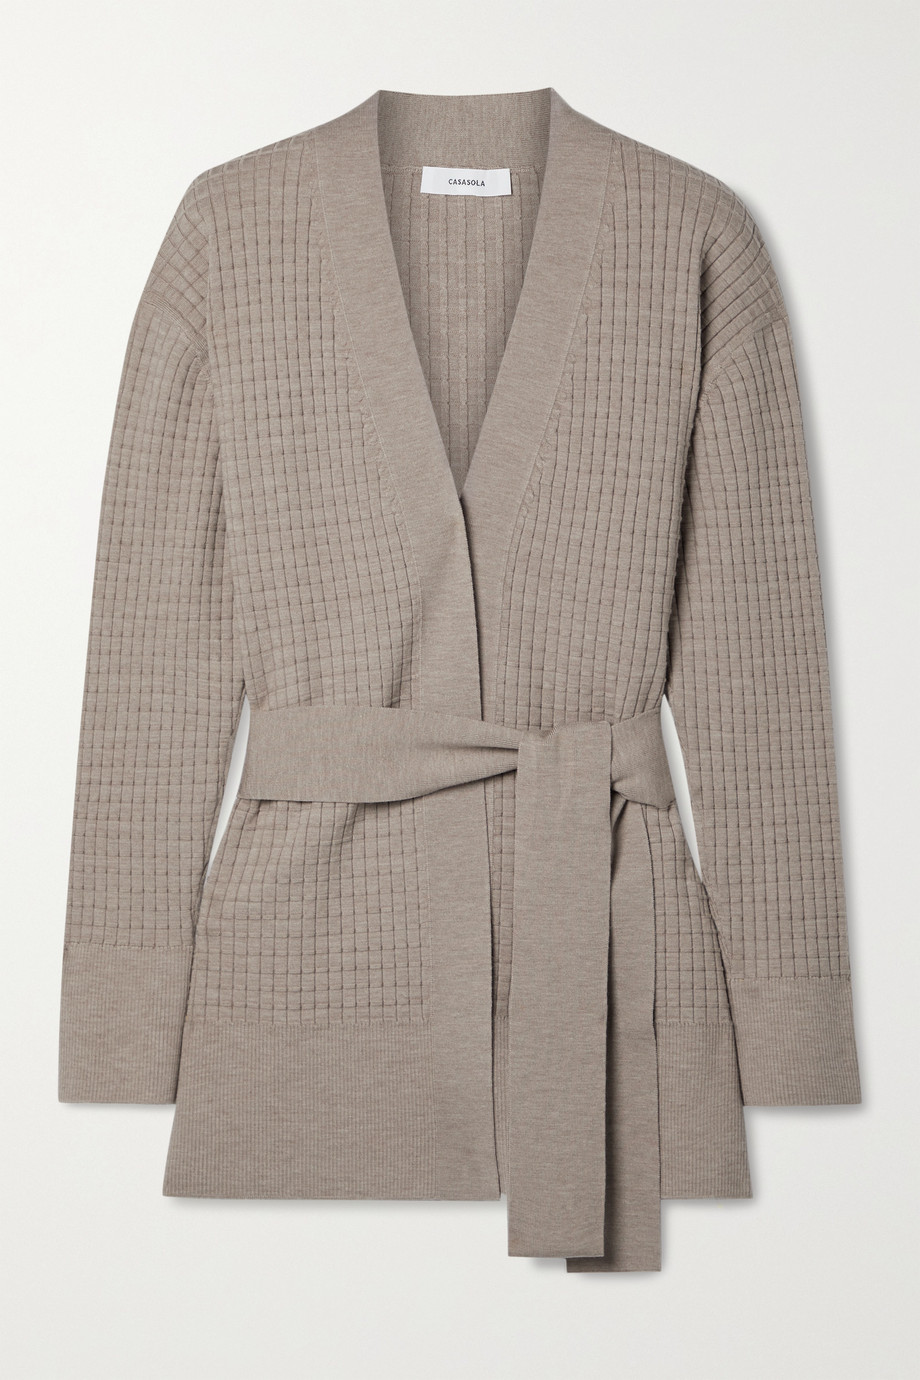 CASASOLA Como belted waffe-knit wool-blend cardigan